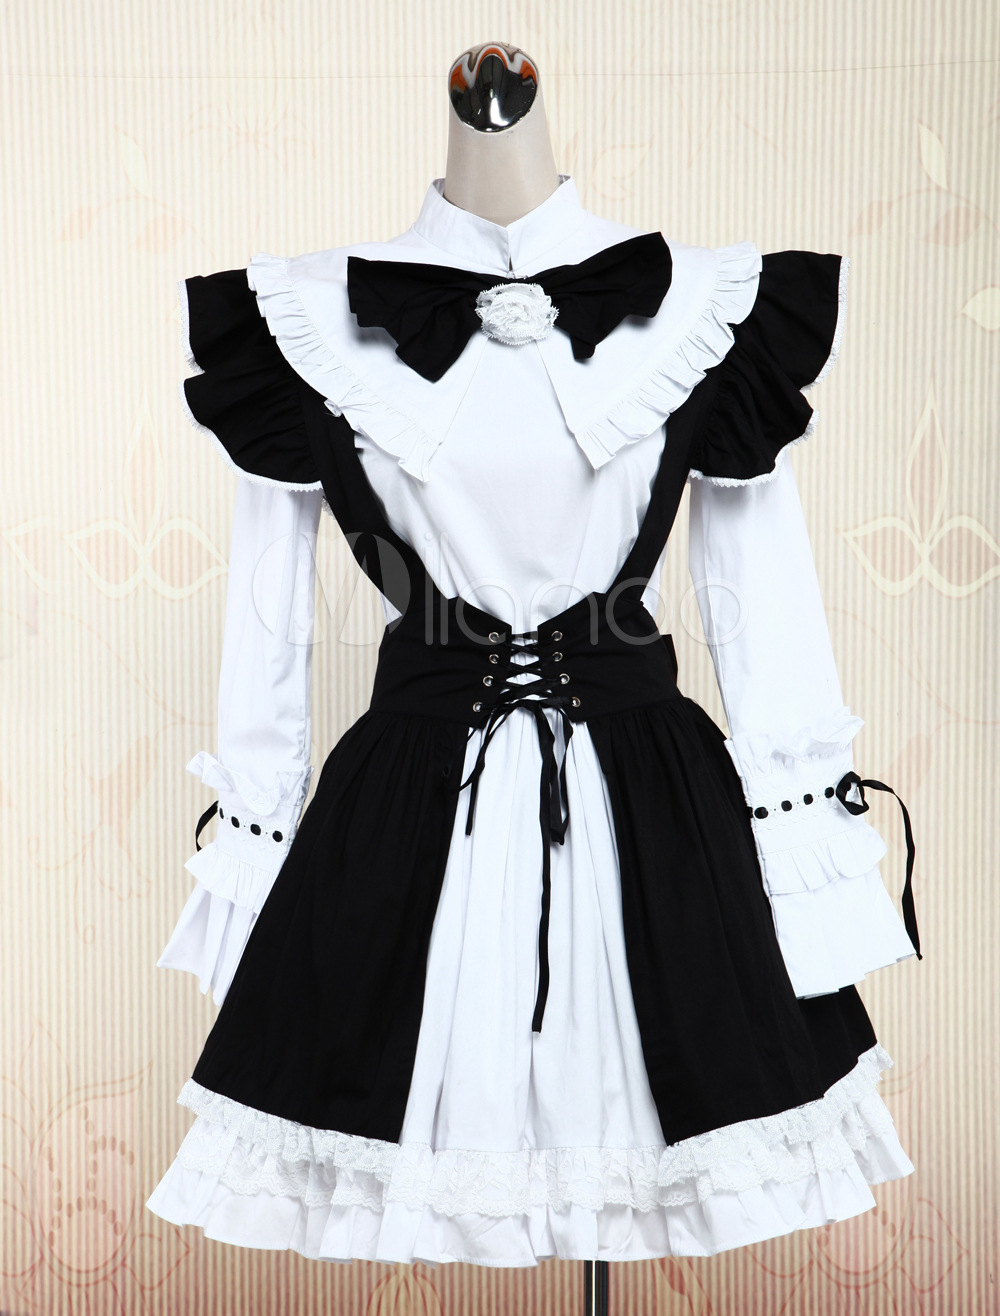 Free shipping! Newest! High - quality! Cotton White Long Sleeves Blouse And Black Cotton Punk Lolita Dress